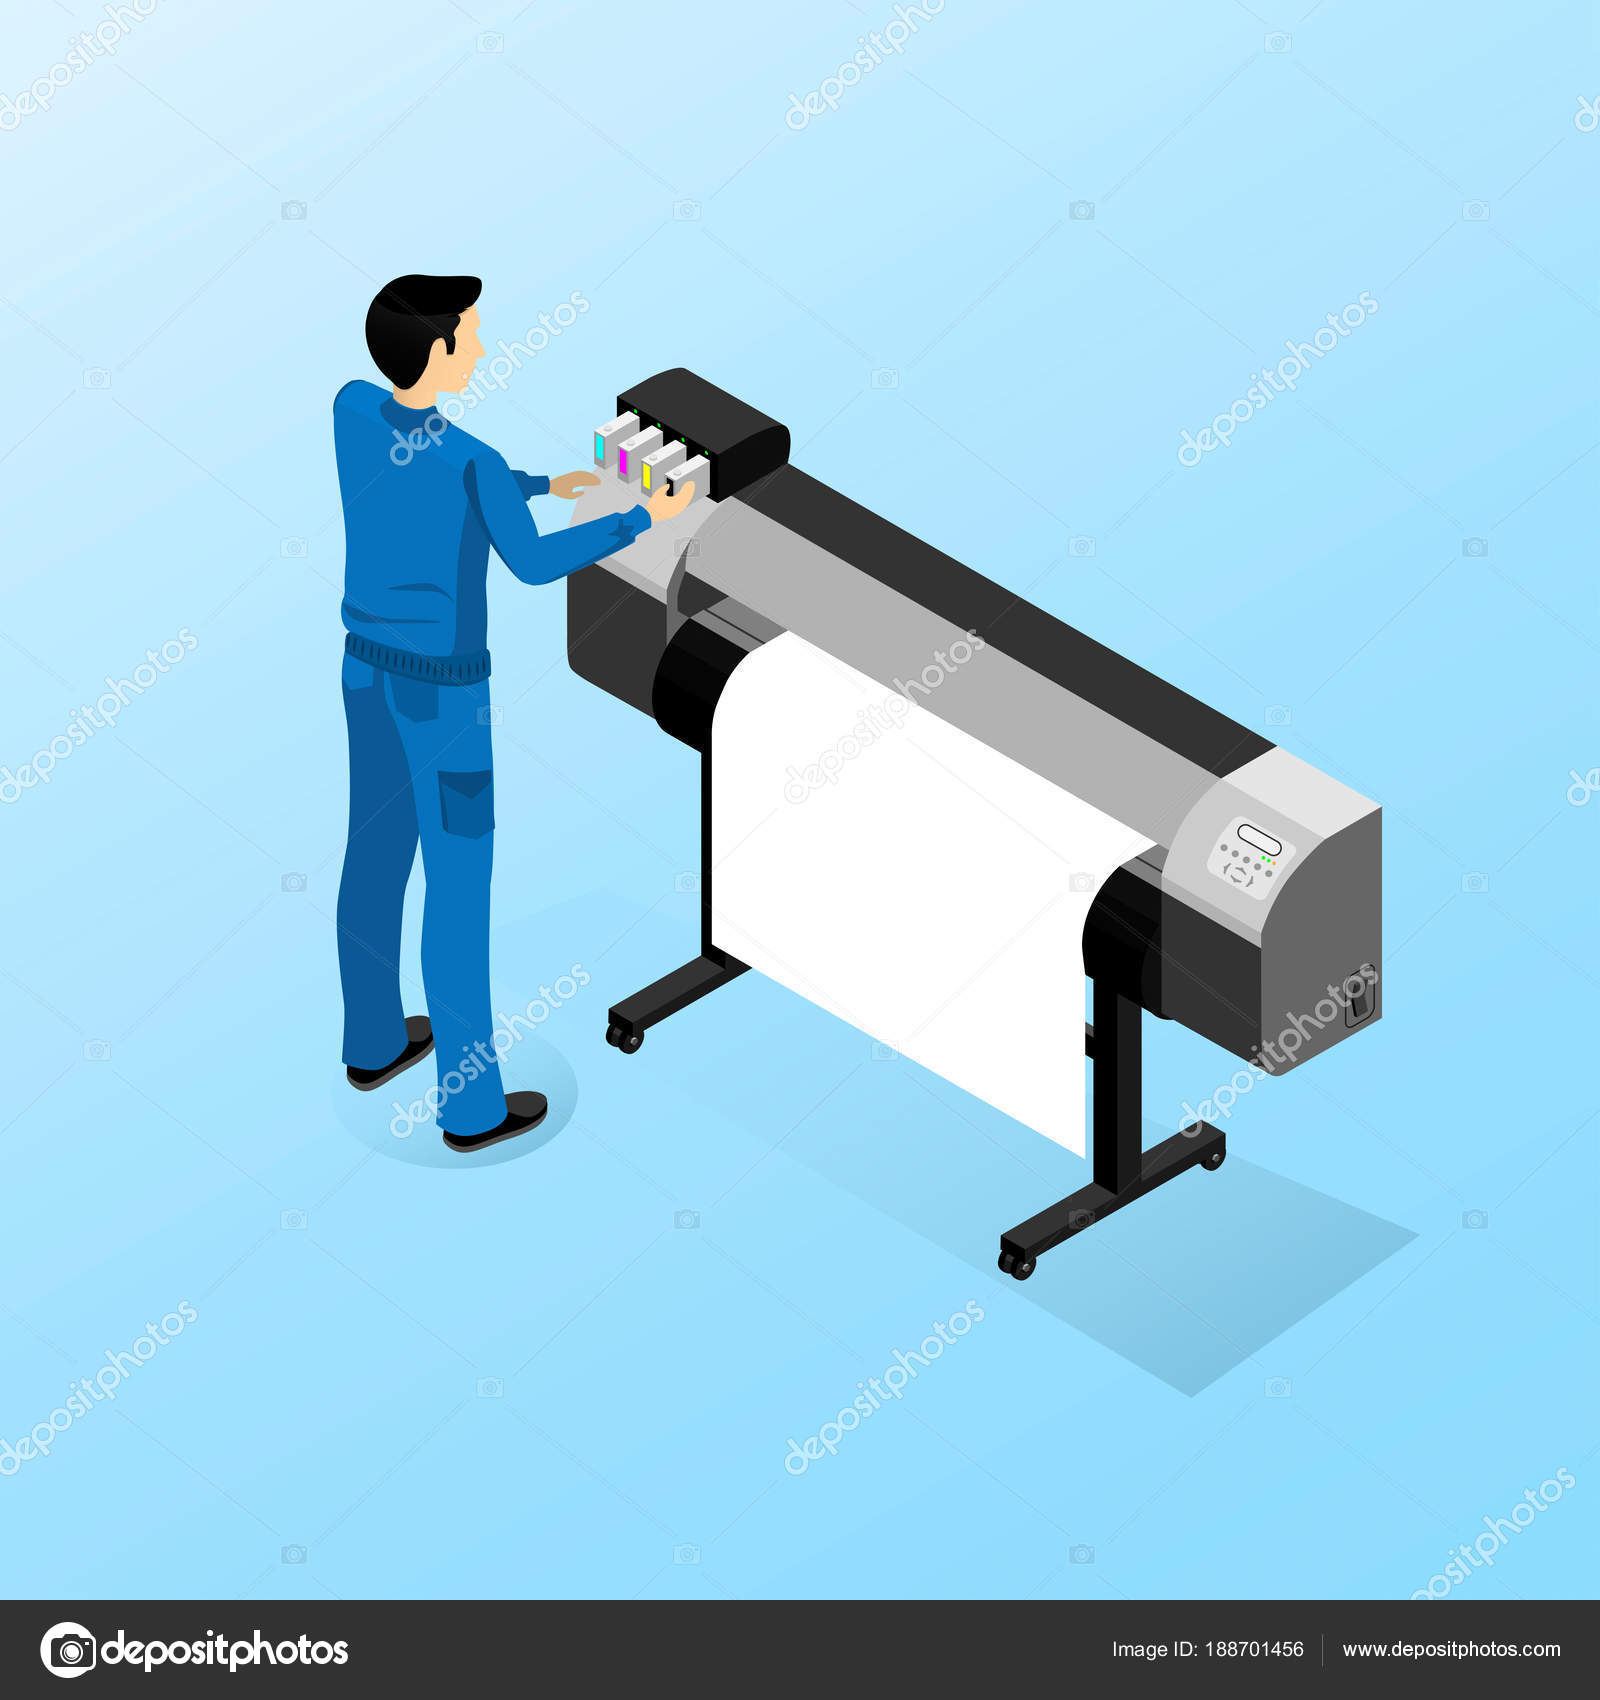 working machine large format printing stock vector c dilendom 188701456 https depositphotos com 188701456 stock illustration working machine large format printing html